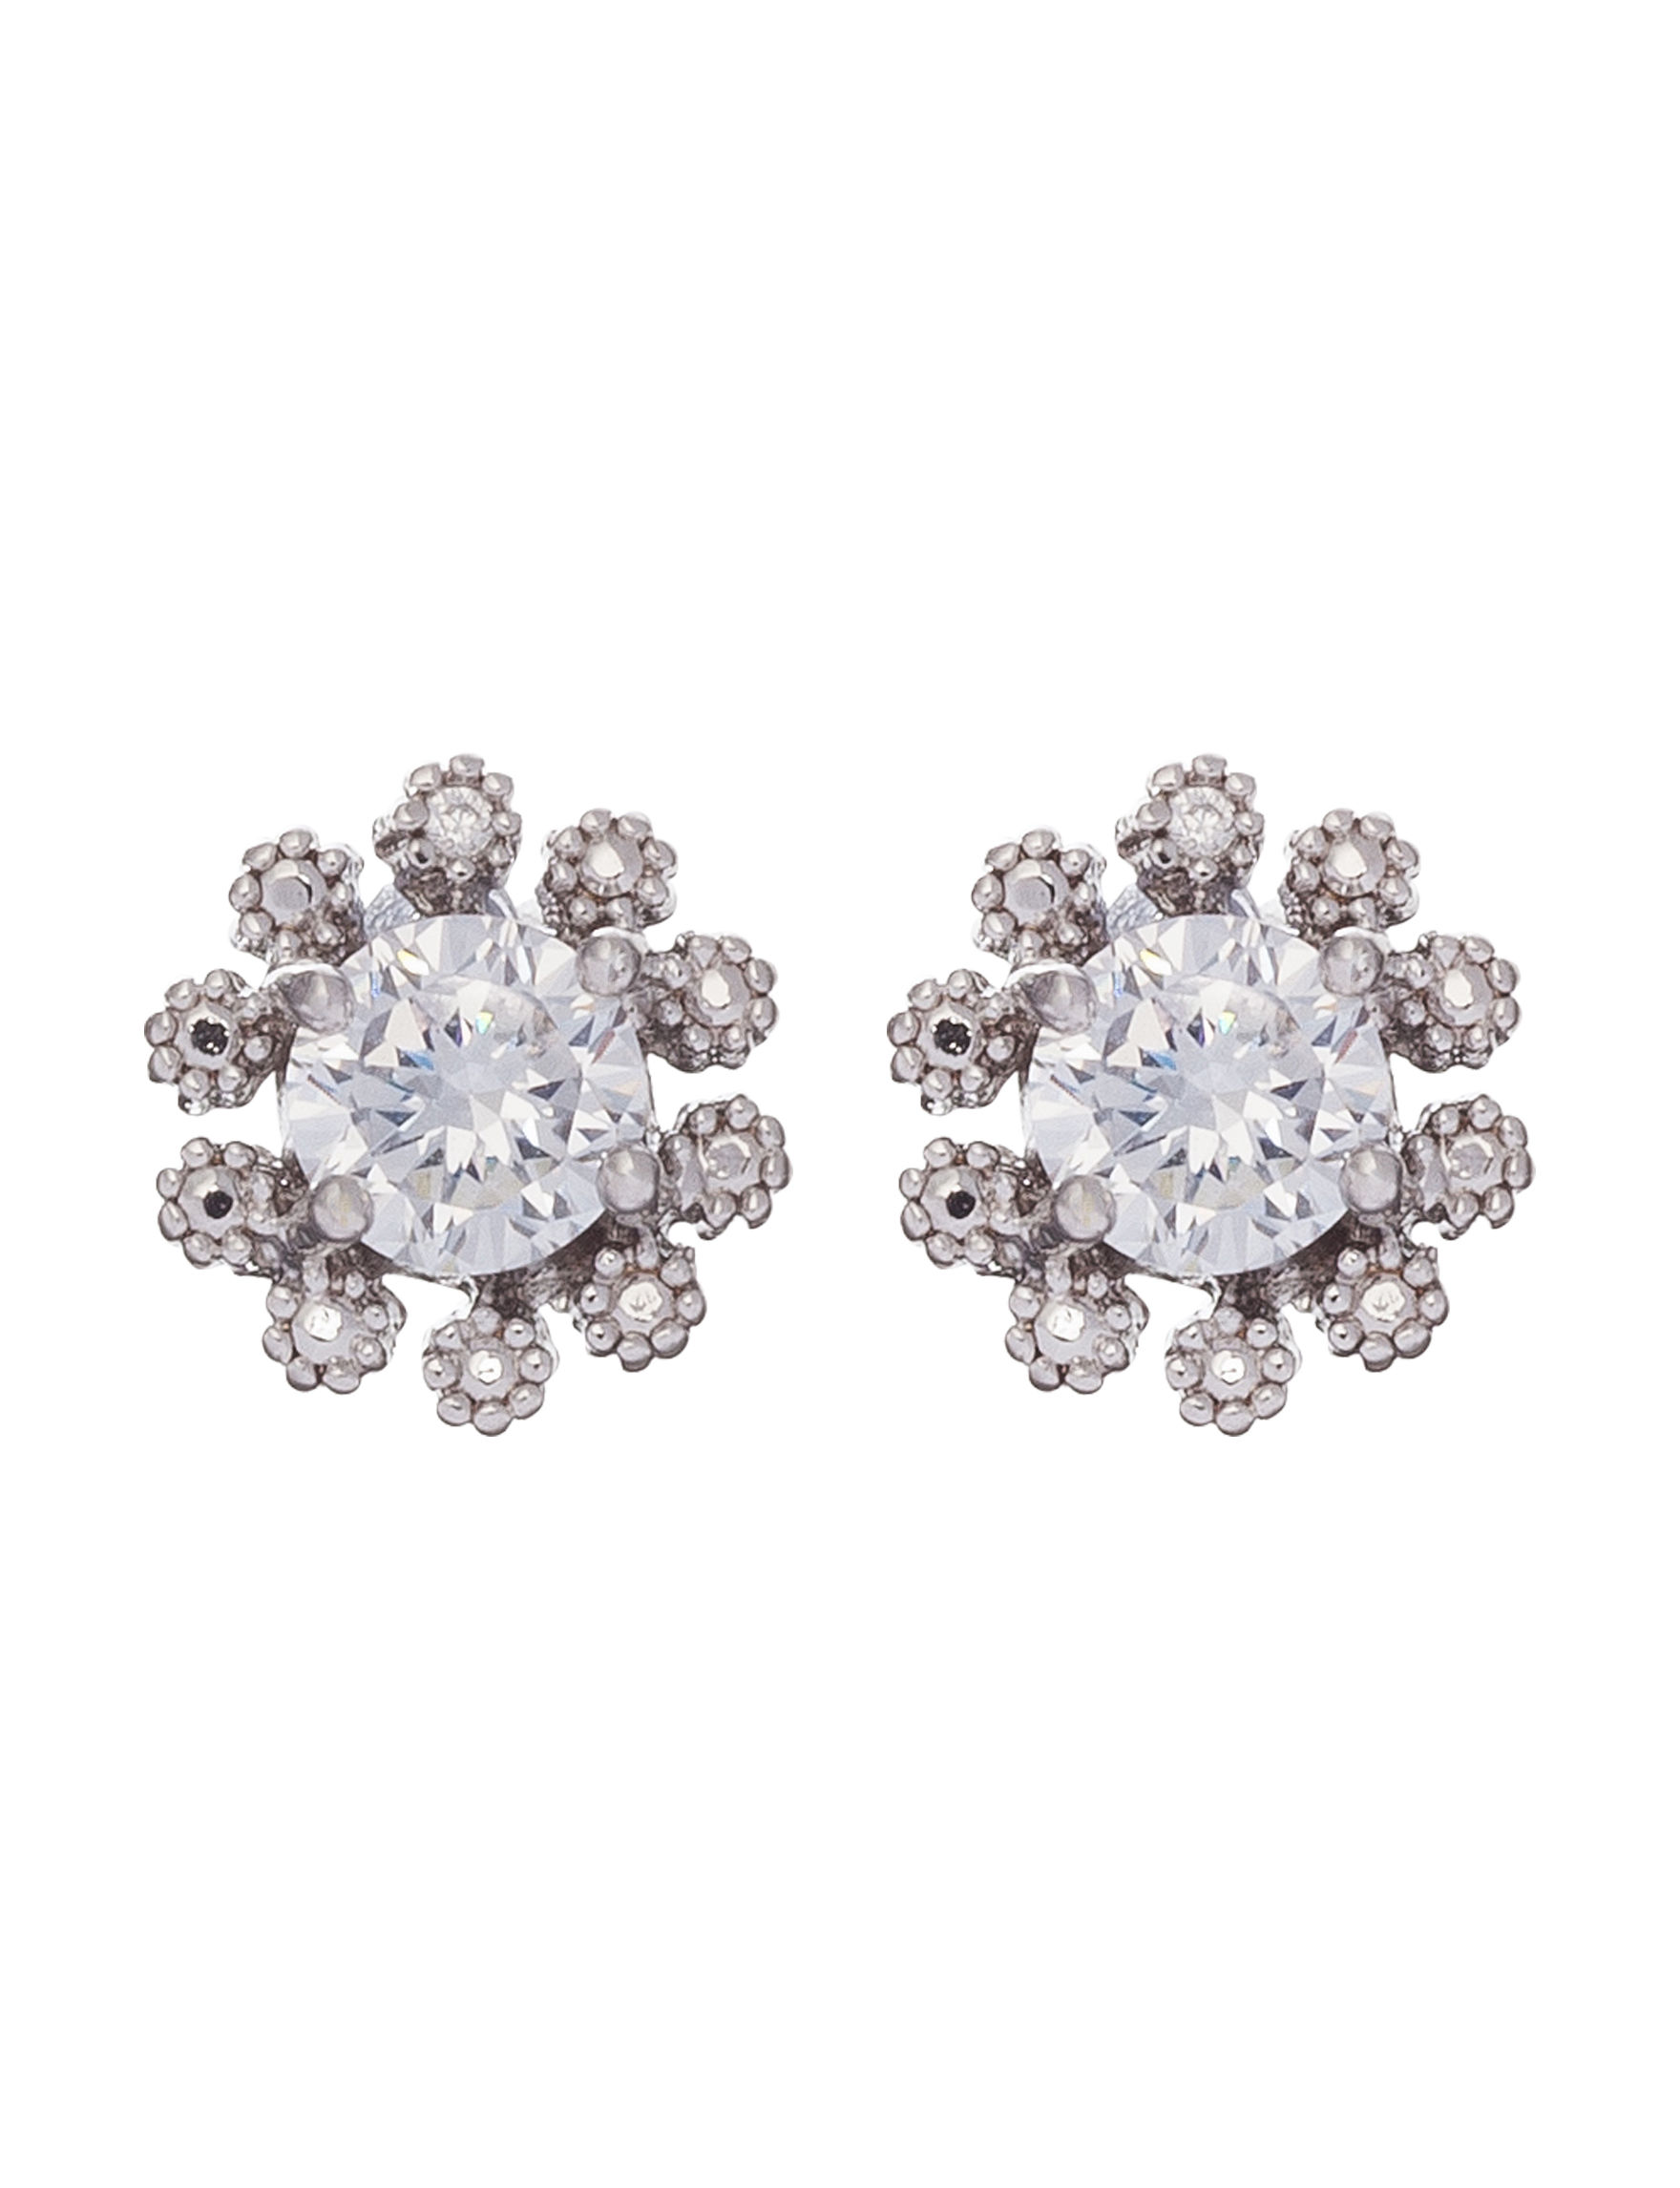 Robert Enterprises Silver Studs Earrings Fashion Jewelry